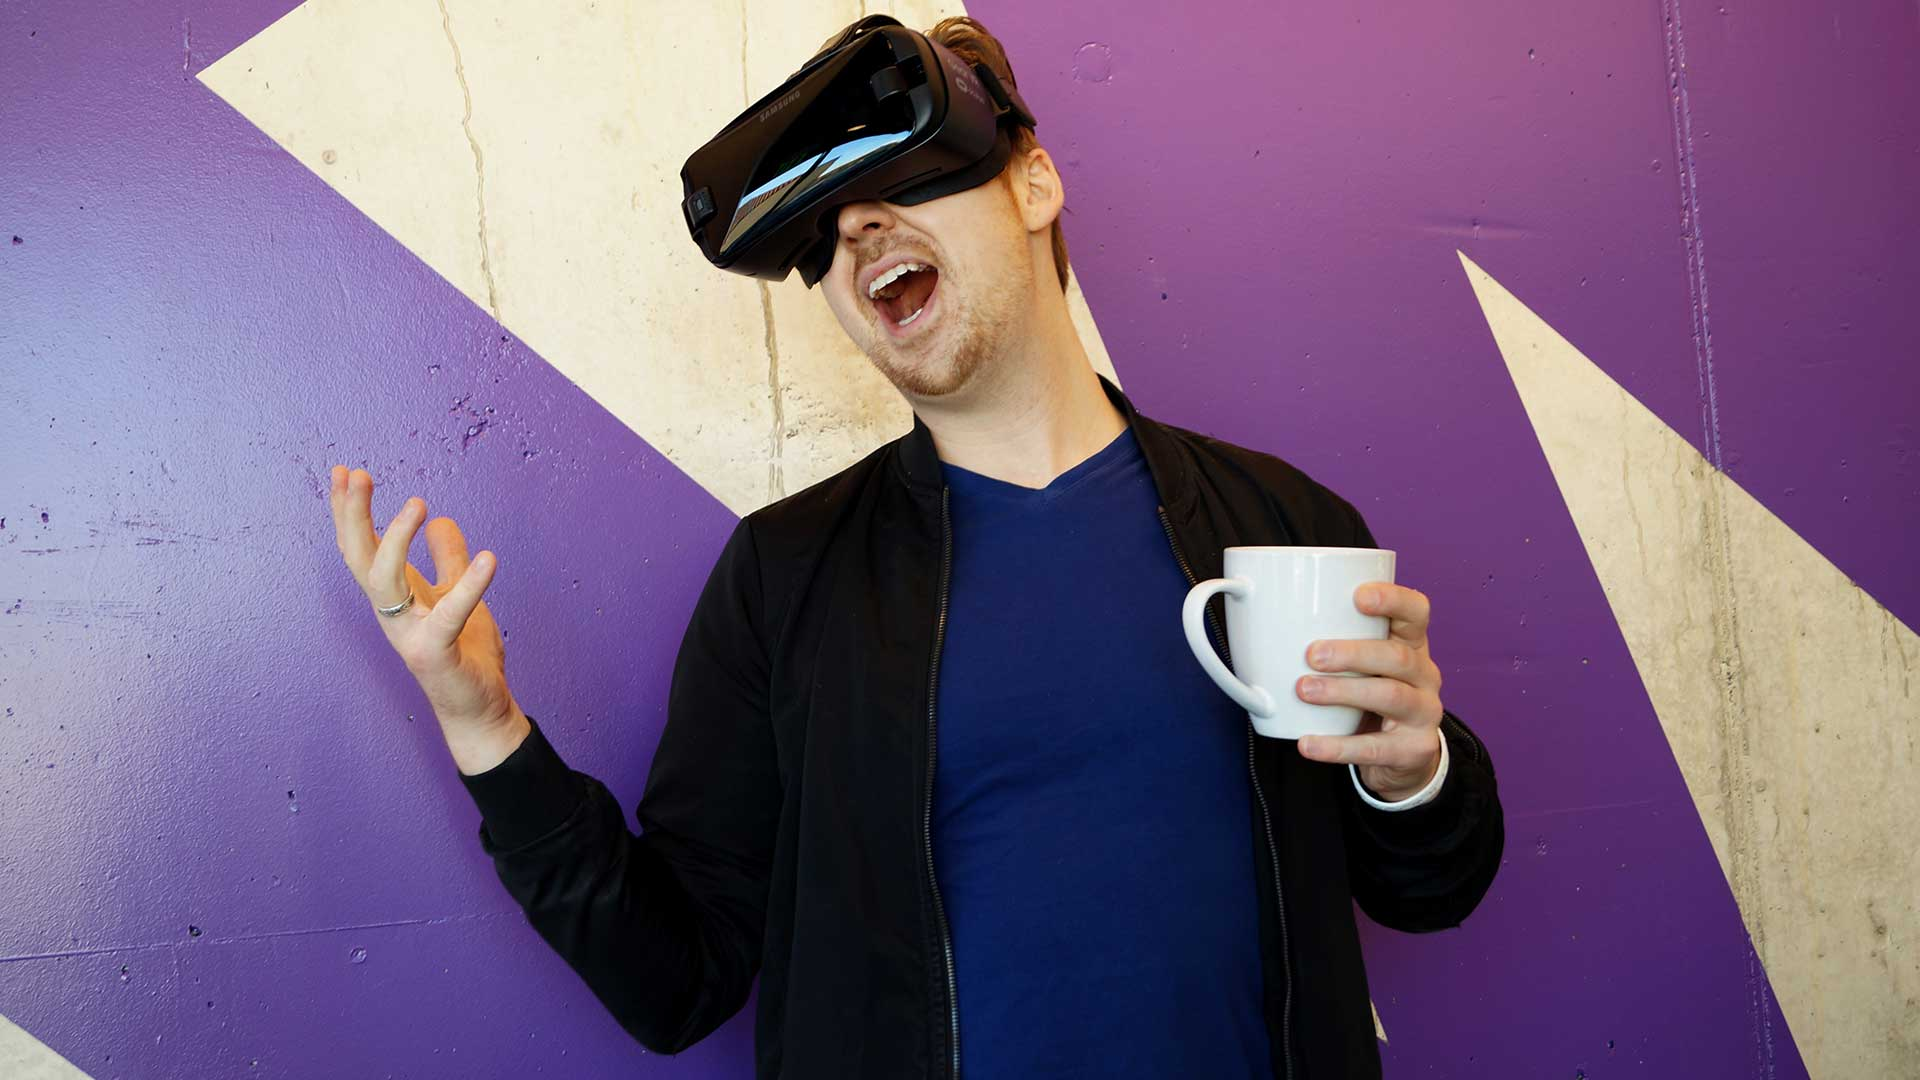 Minnesota-State-Fair-Vr-Experience-Offers-Guests-All-the-Thrills-of-Waiting-in-Line.jpg